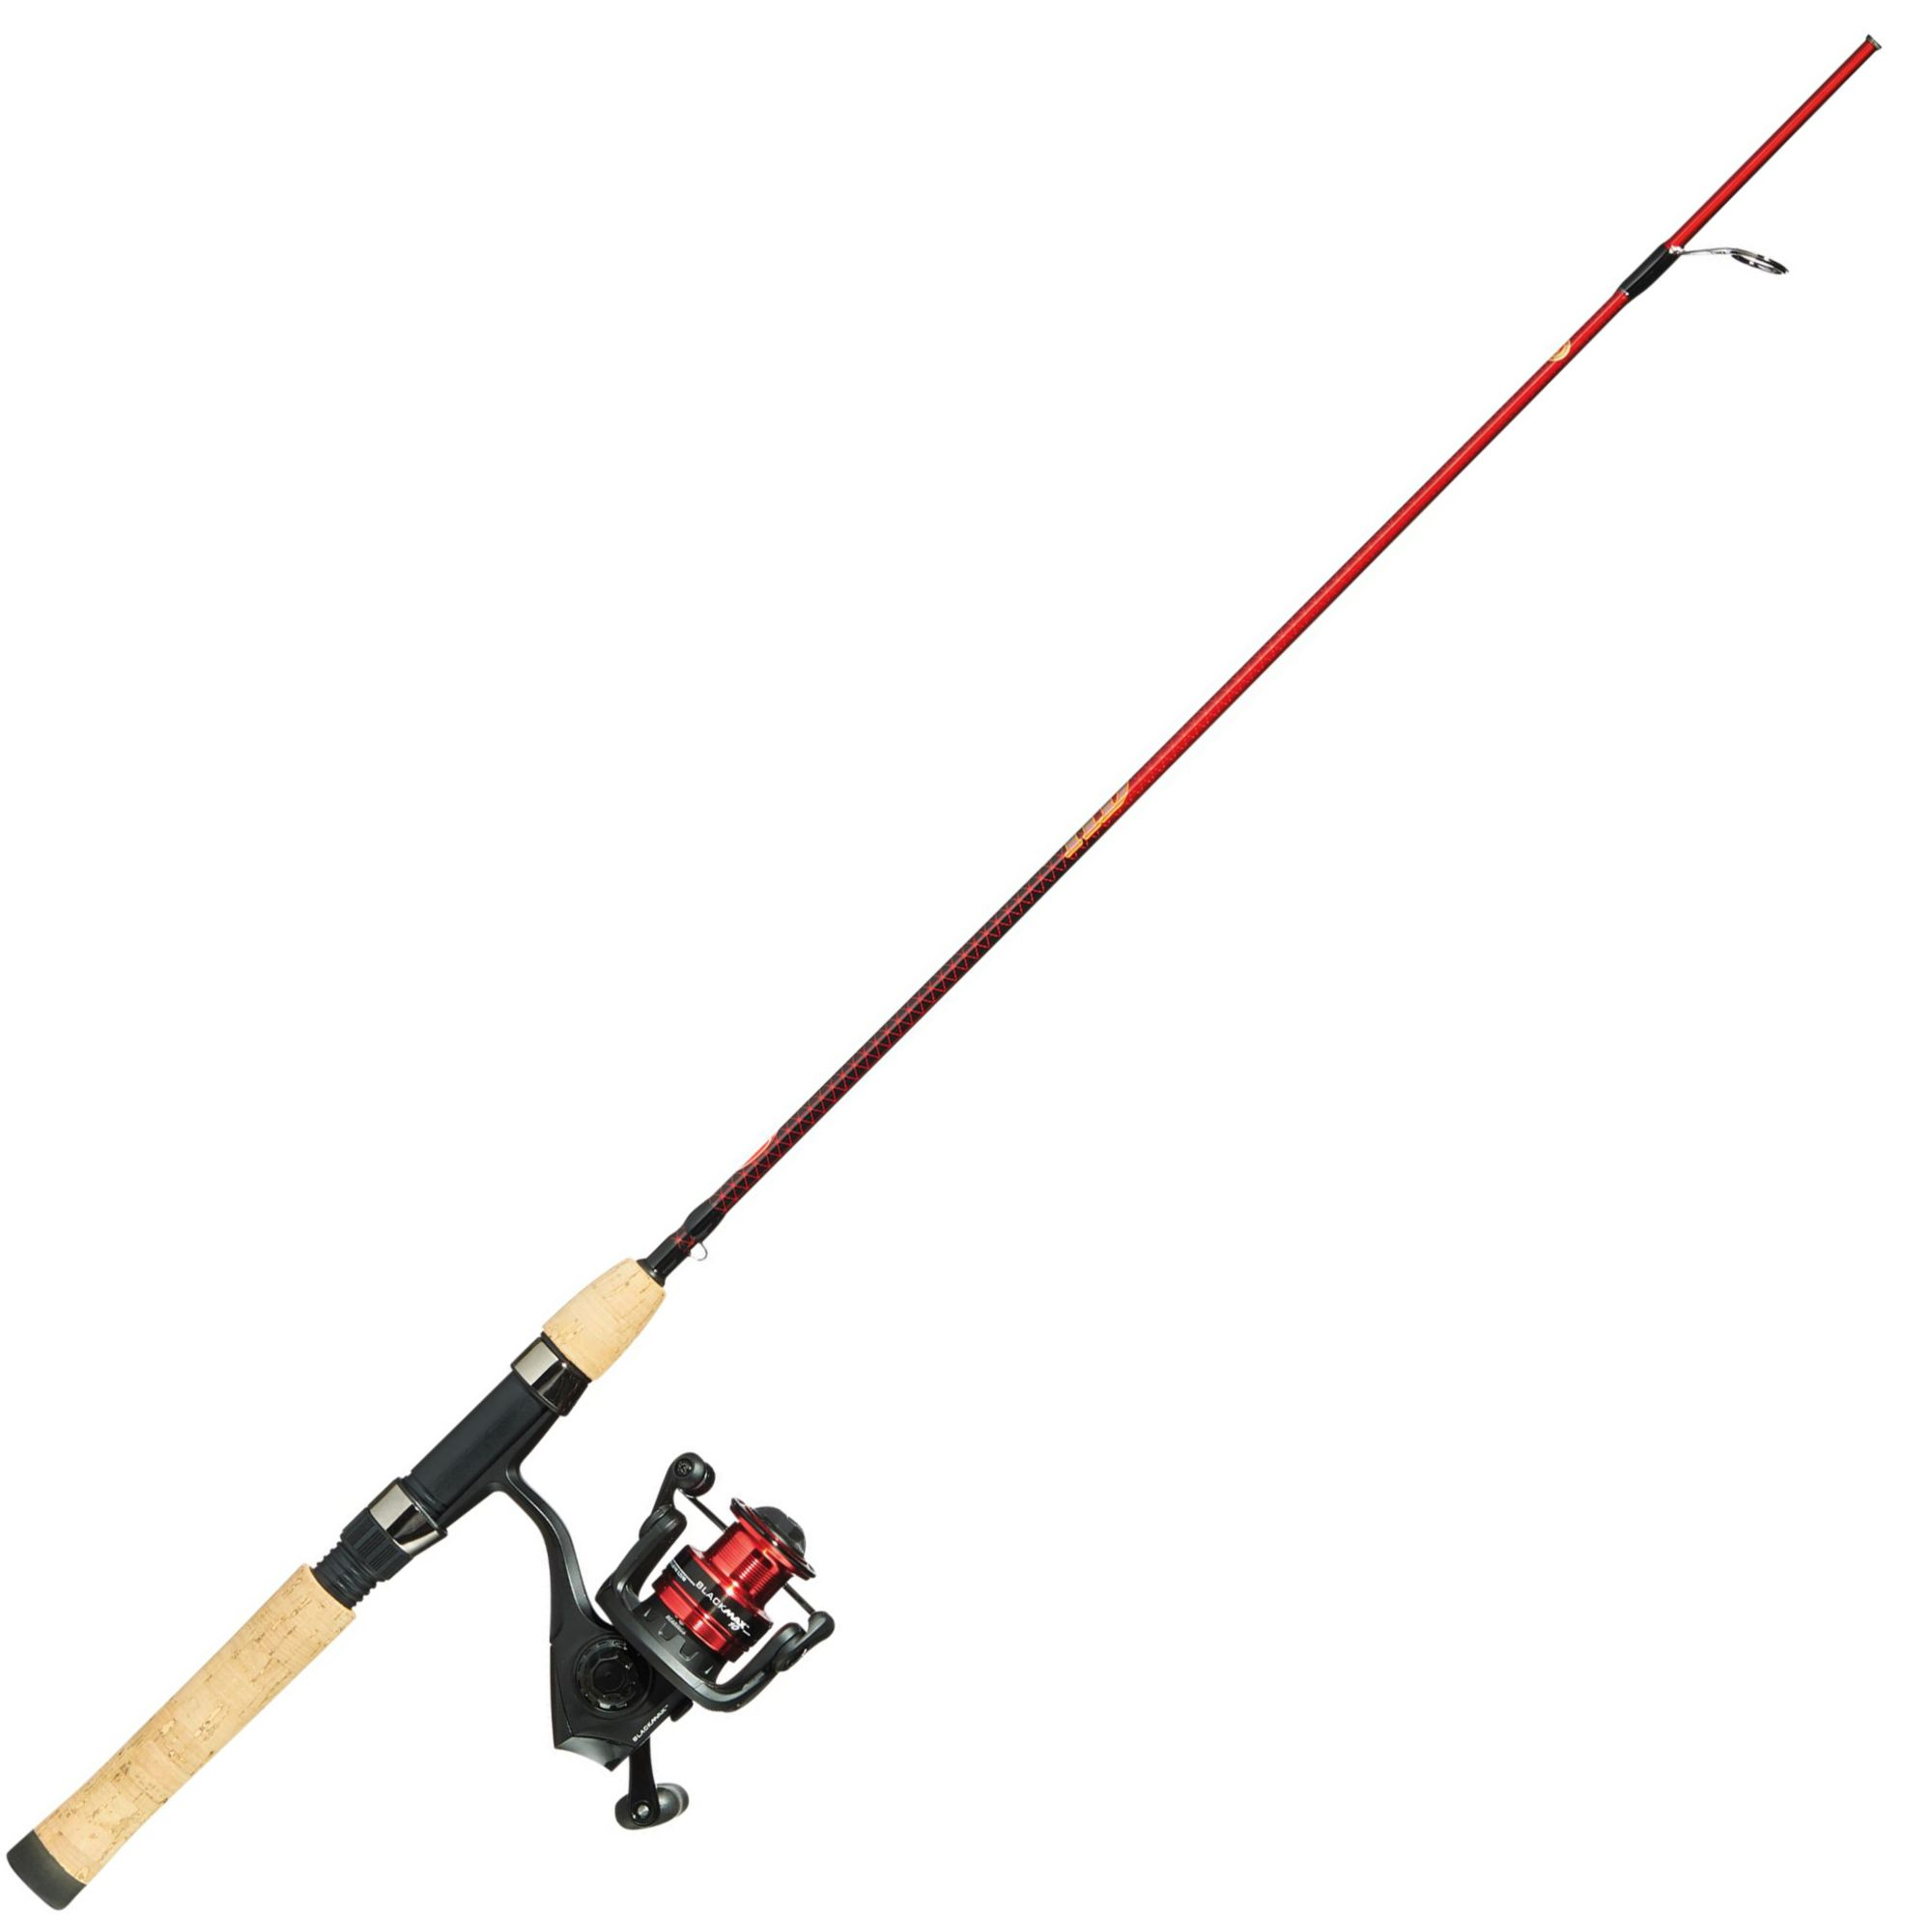 Berkley Cherrywood HD Black Max Spinning Combo